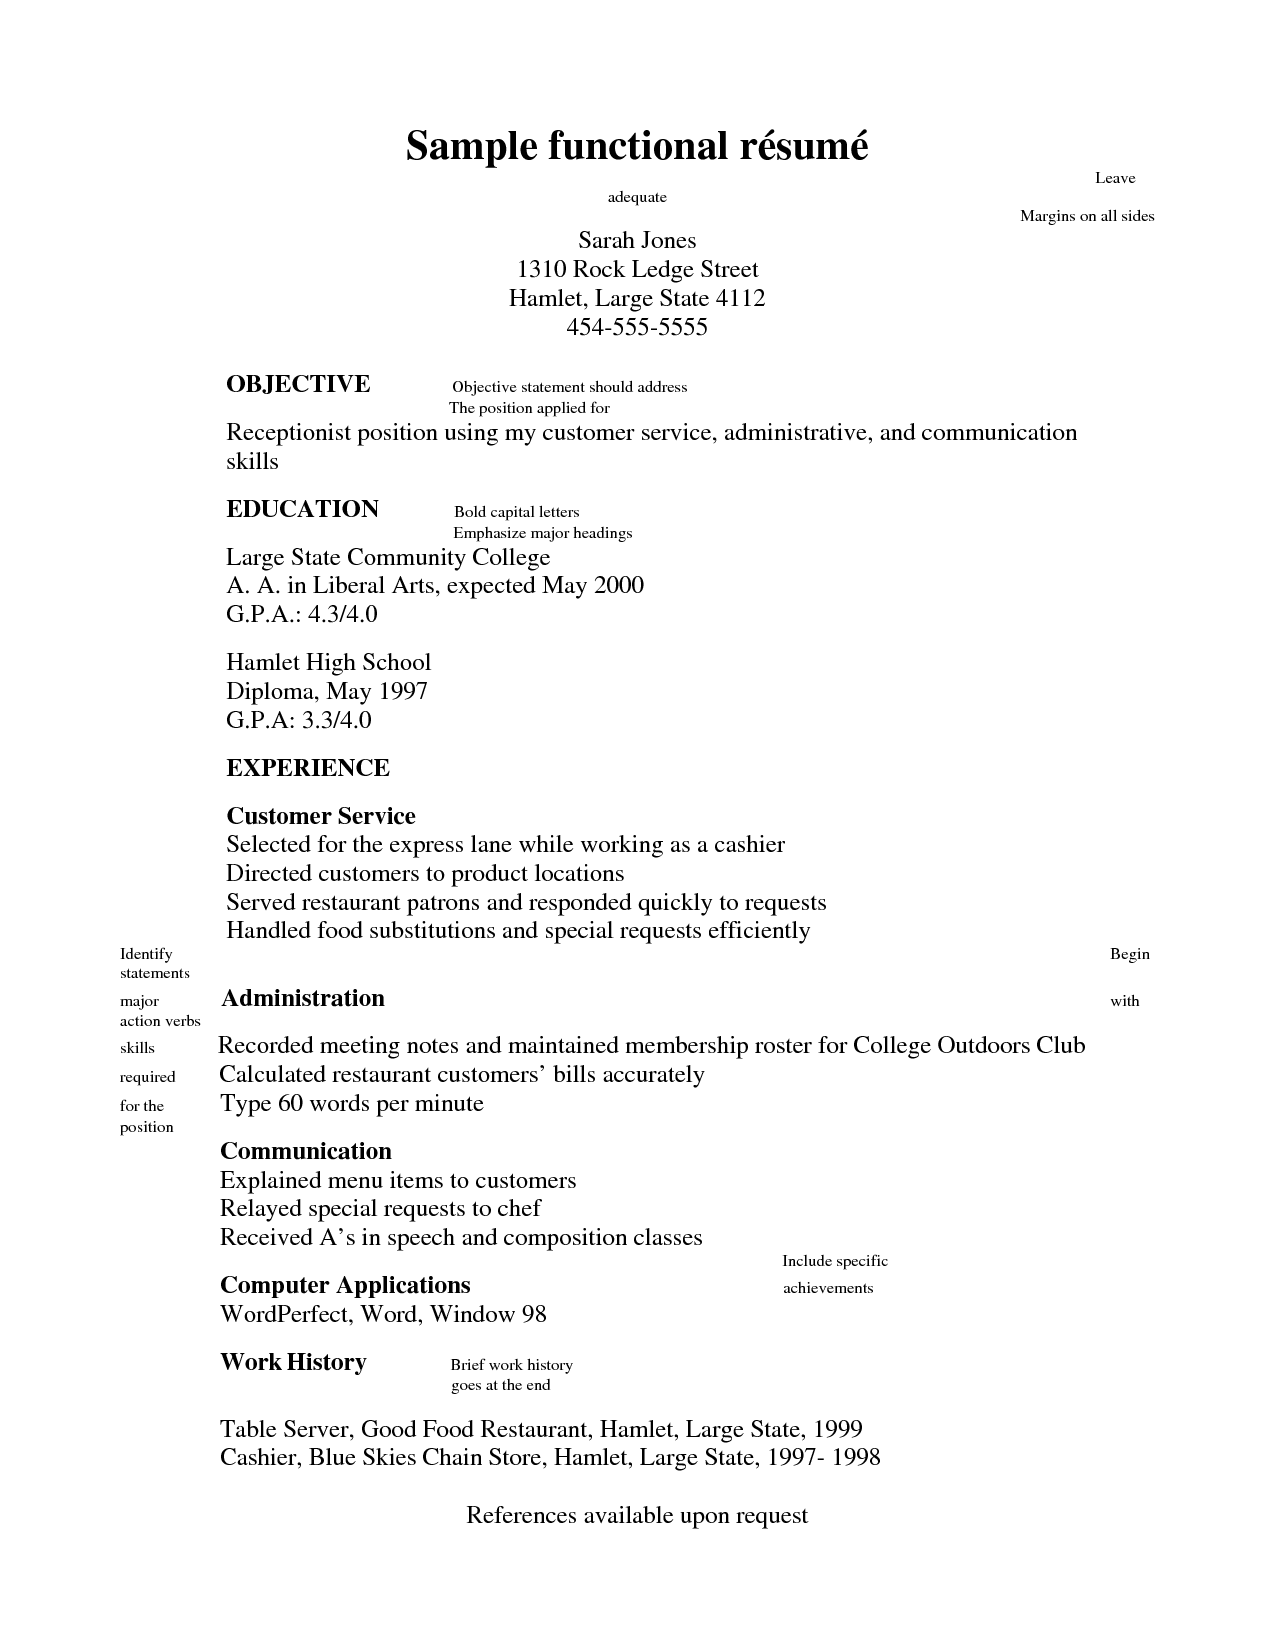 Marketing Resume Summary Statement Examples Resume Objective Statement